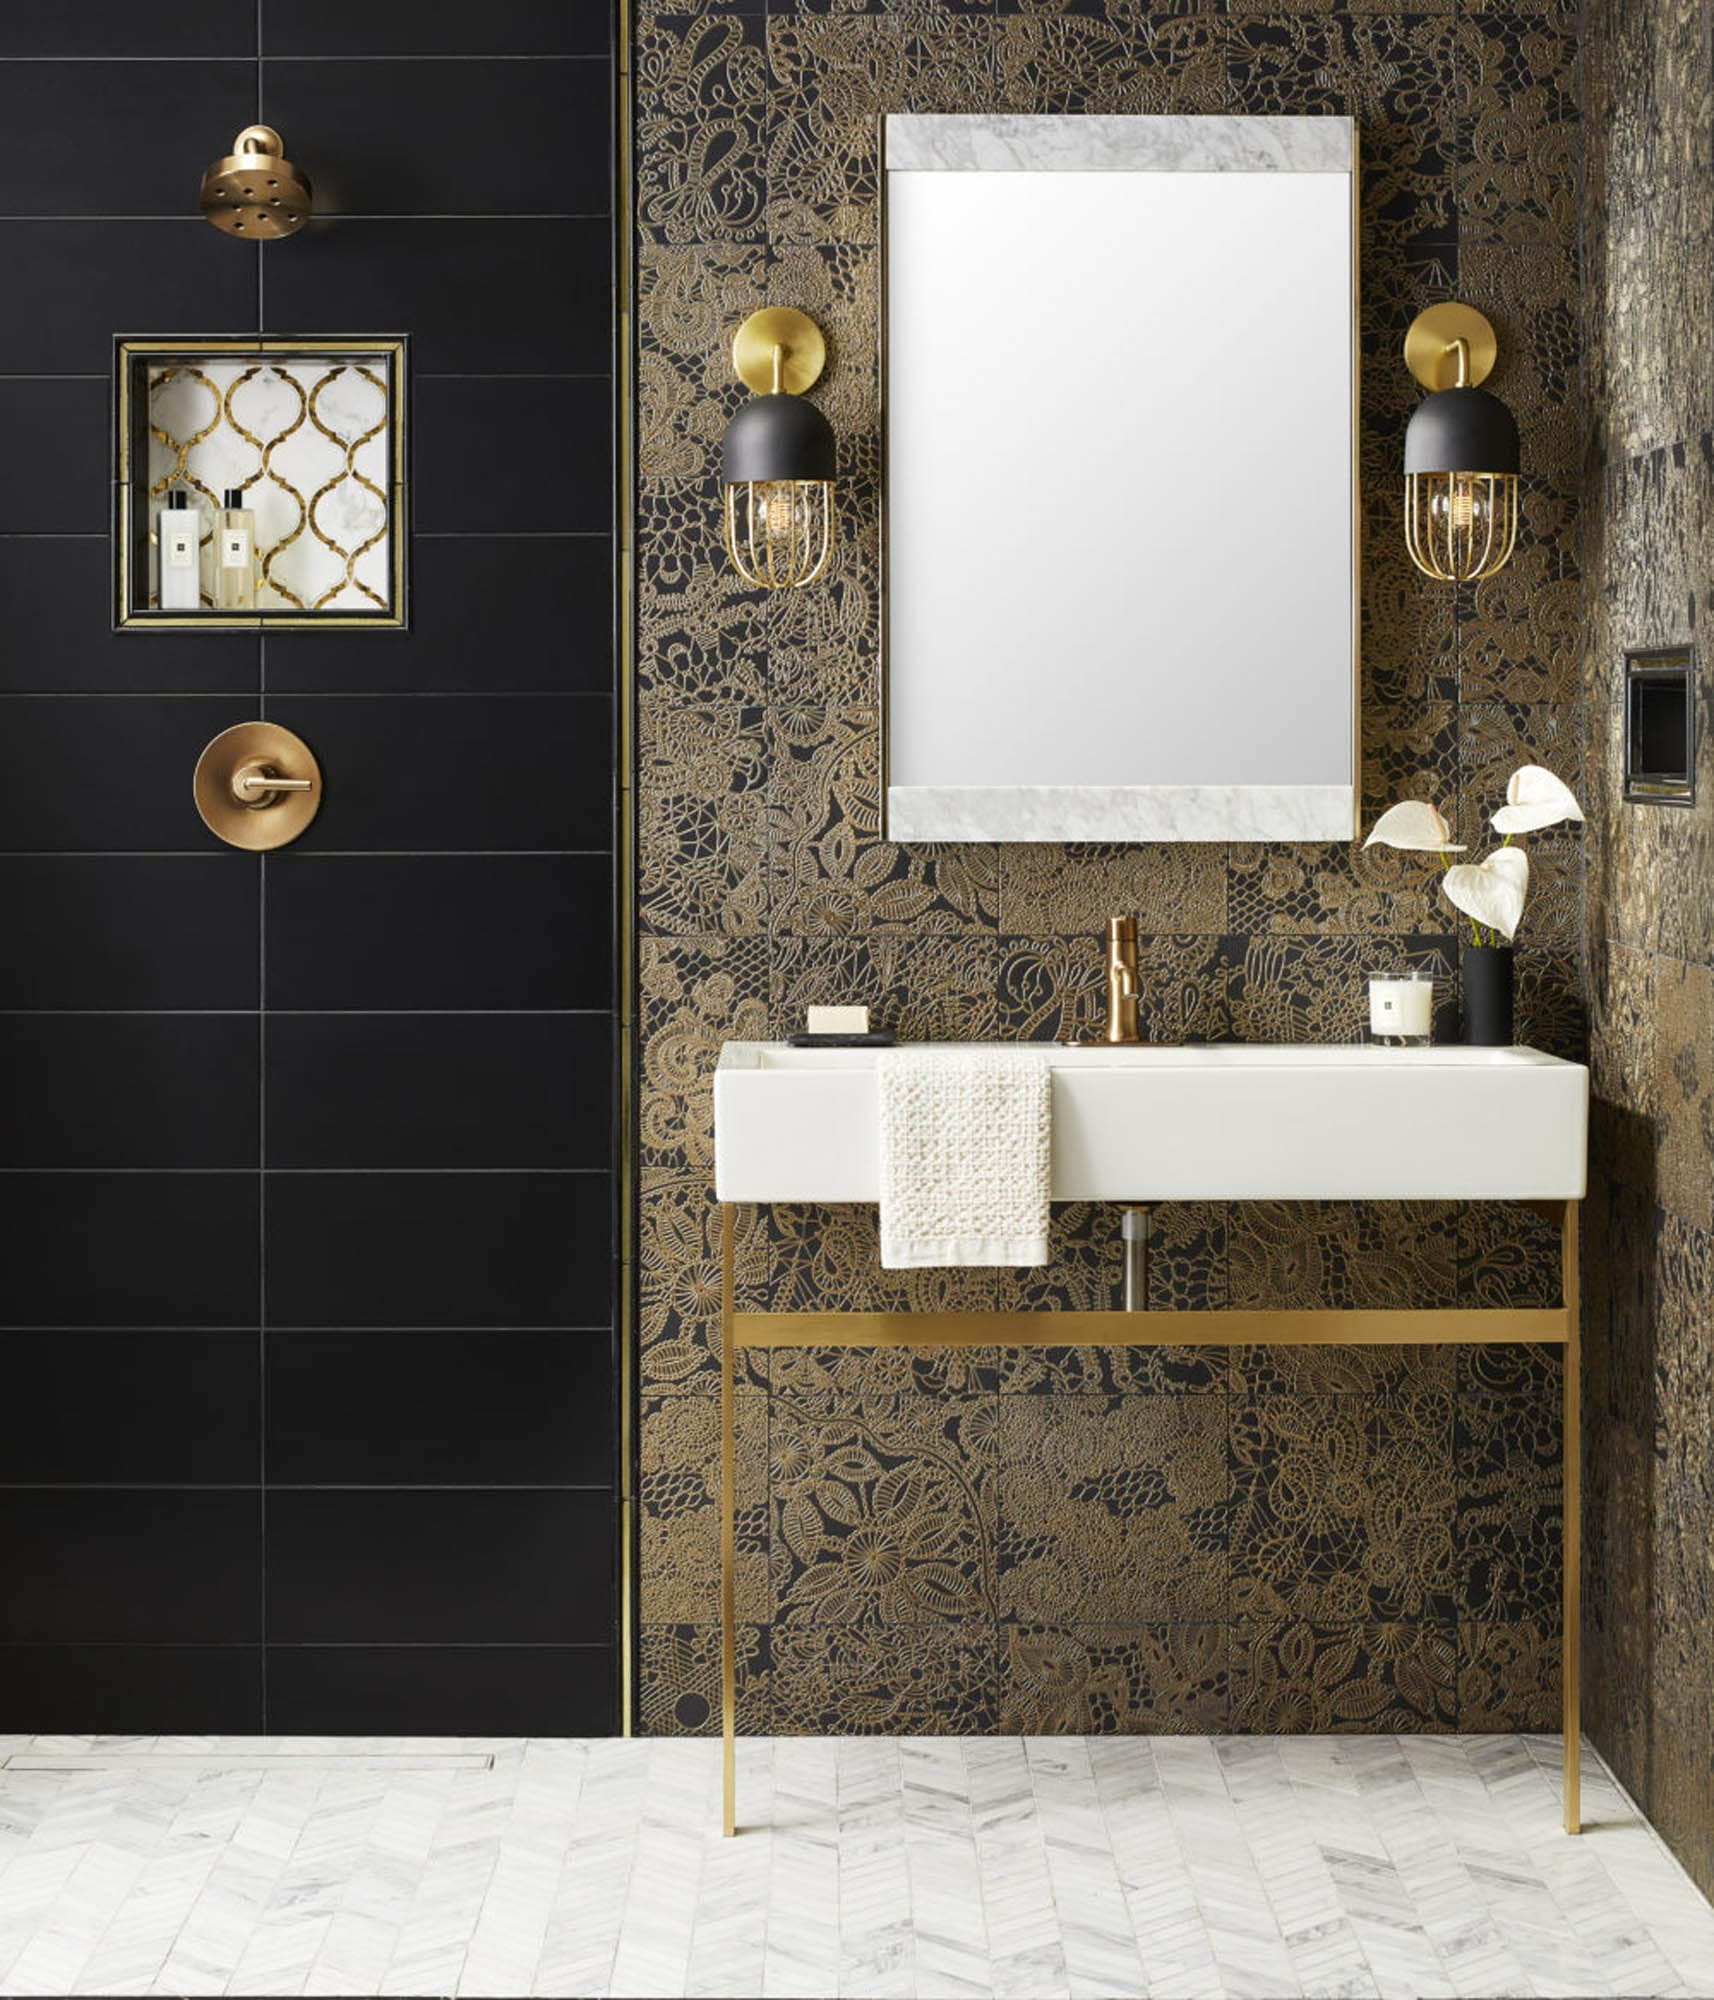 Black, gold and white bathroom tile